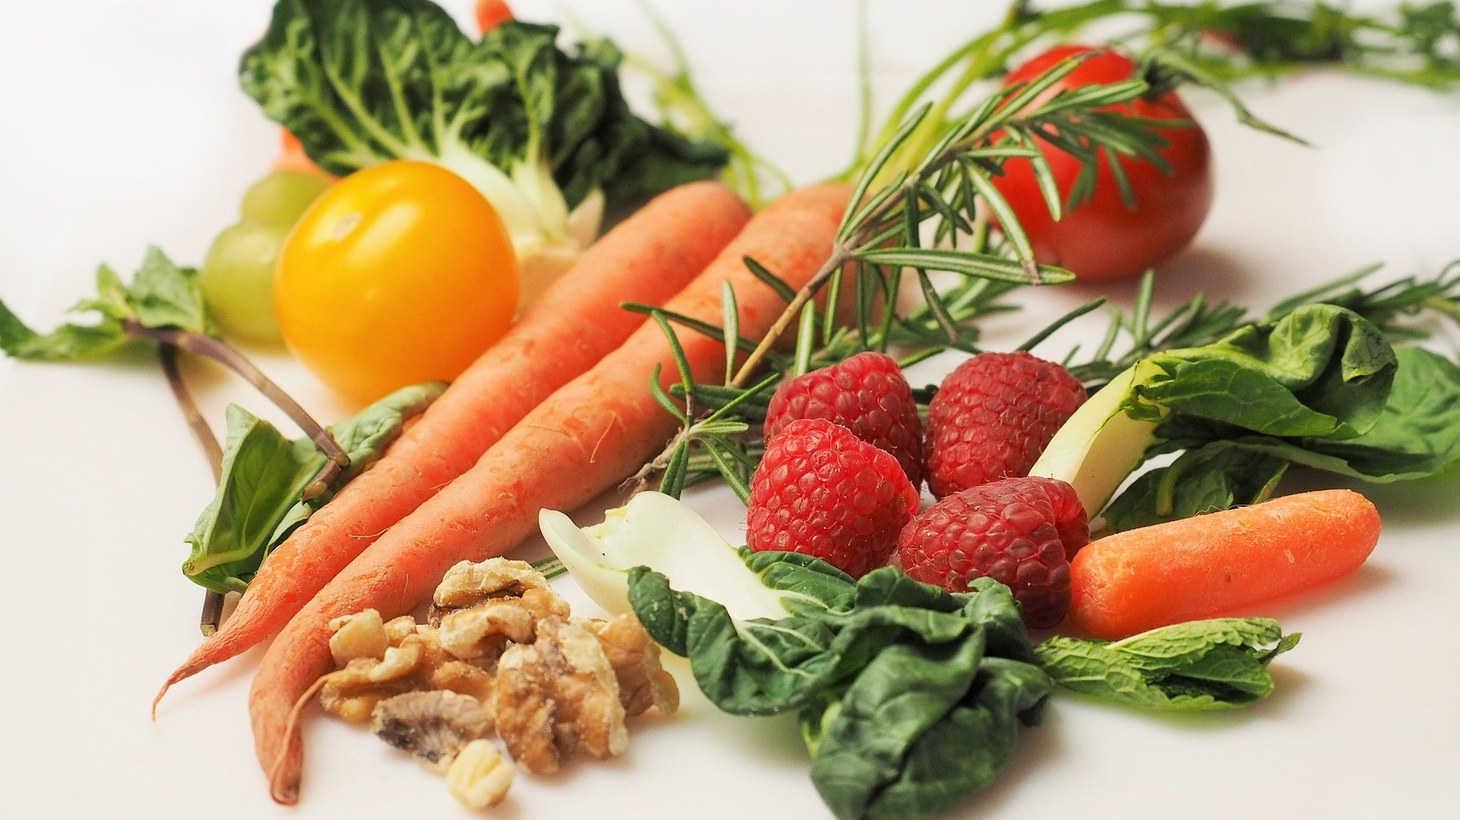 Vegetables, nuts, and fruit.